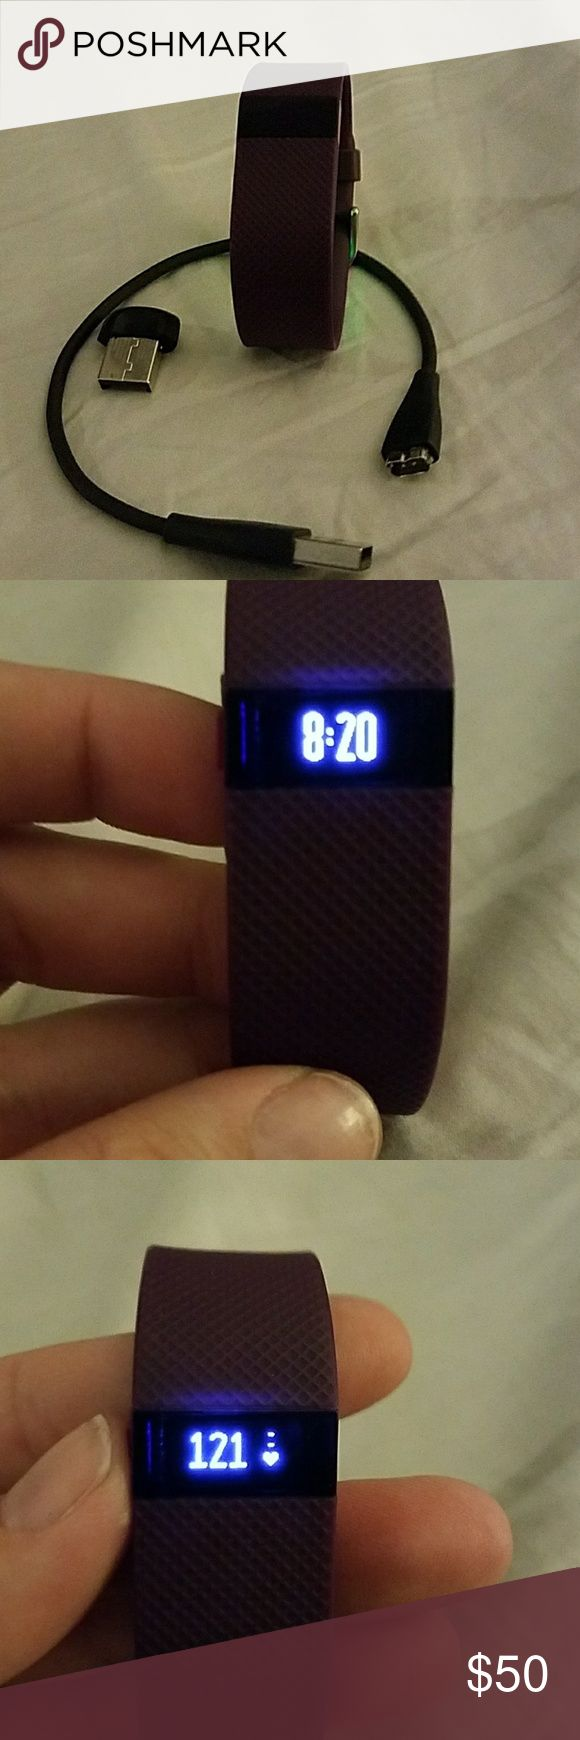 Fitbit Charge HR Small EUC!! Reposhing because my husband bought me an alta. Comes with charger and computer adapter. Monitors heart rate, steps, calories burned, stairs climbed and tracks sleep activity. Band has minimal wear. Size small band Not interchangable. FitBit Other